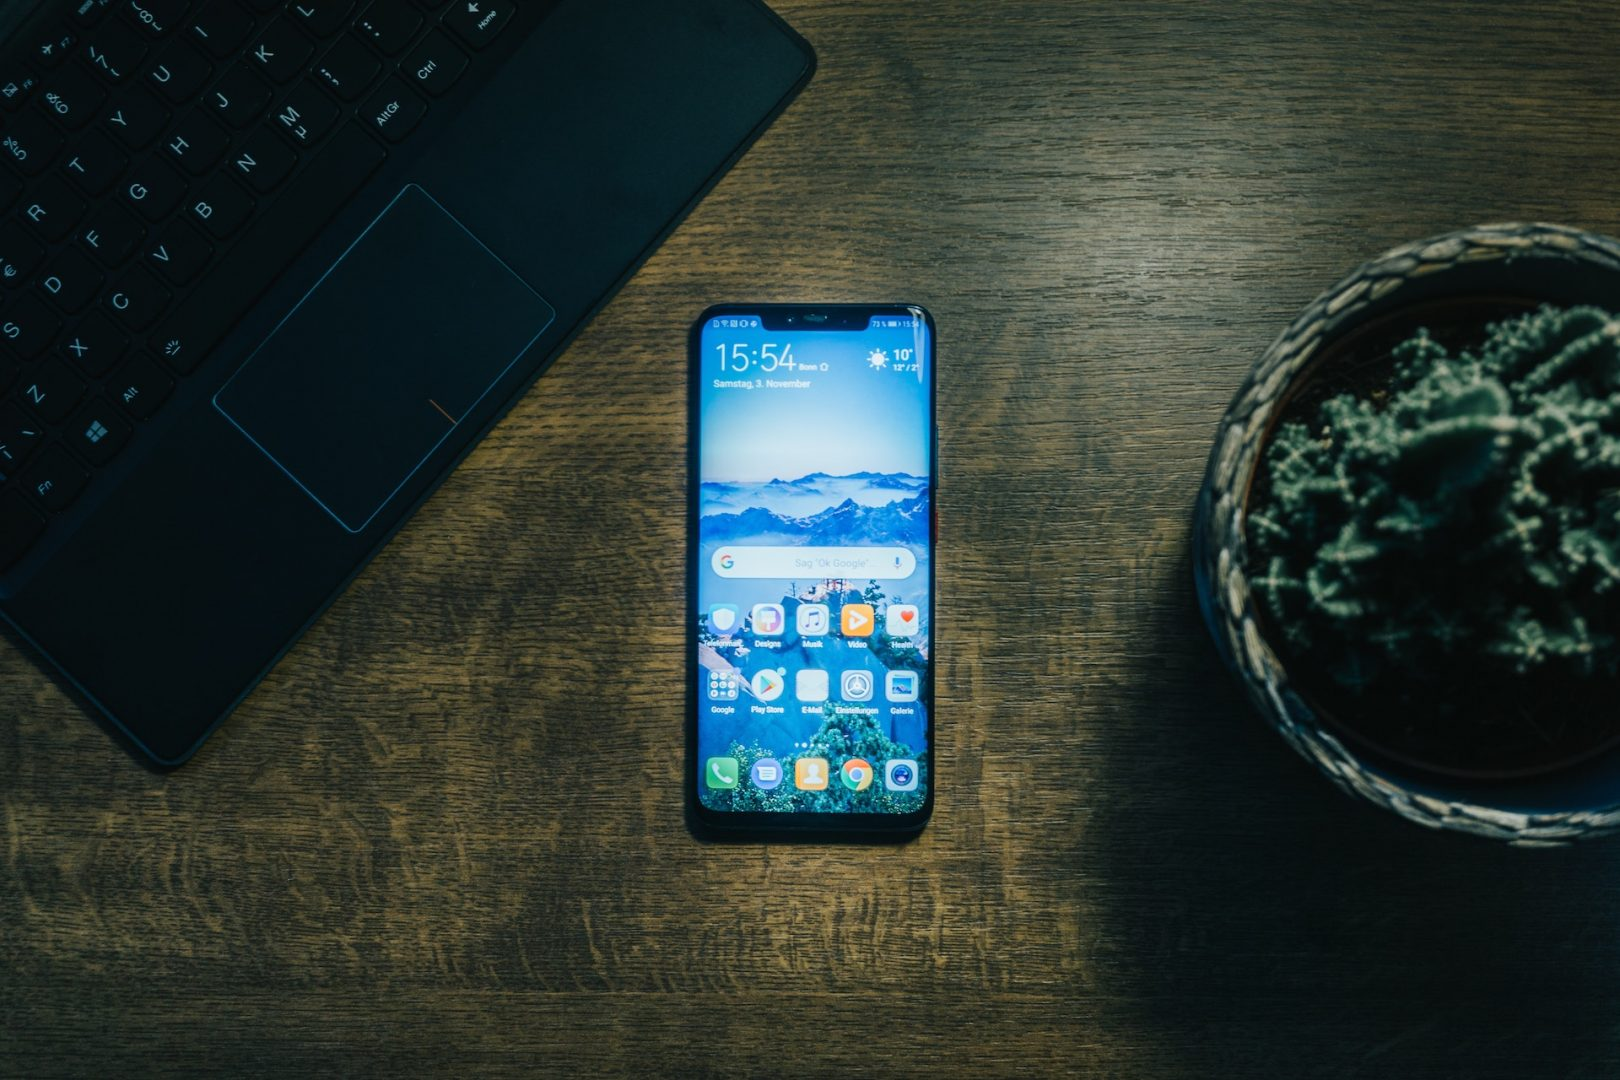 Huawei Mate 20 Pro Android phone